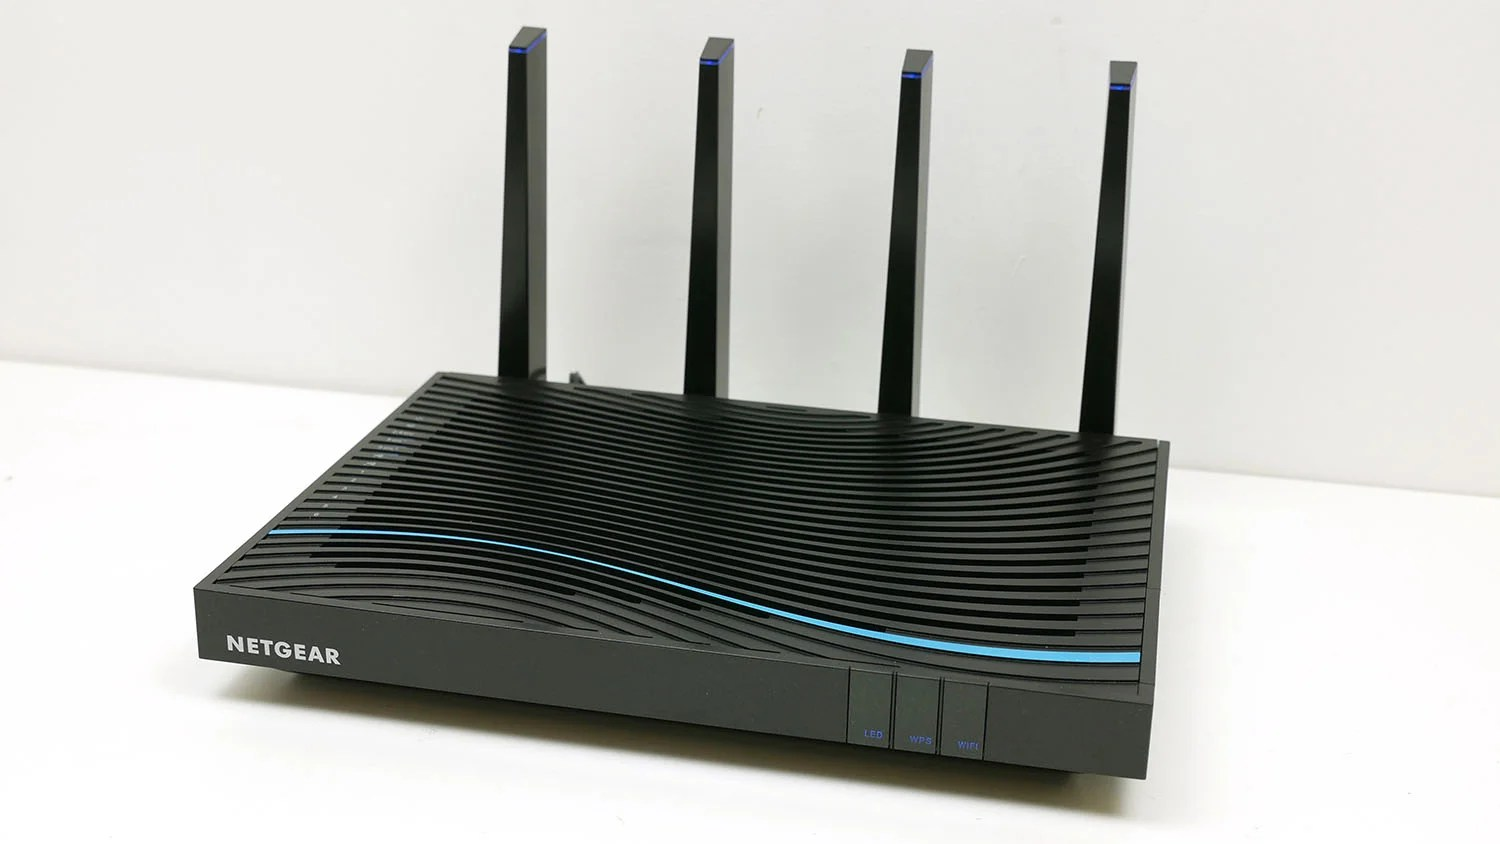 Netgear Nighthawk X8 R8500 Review  Trusted Reviews